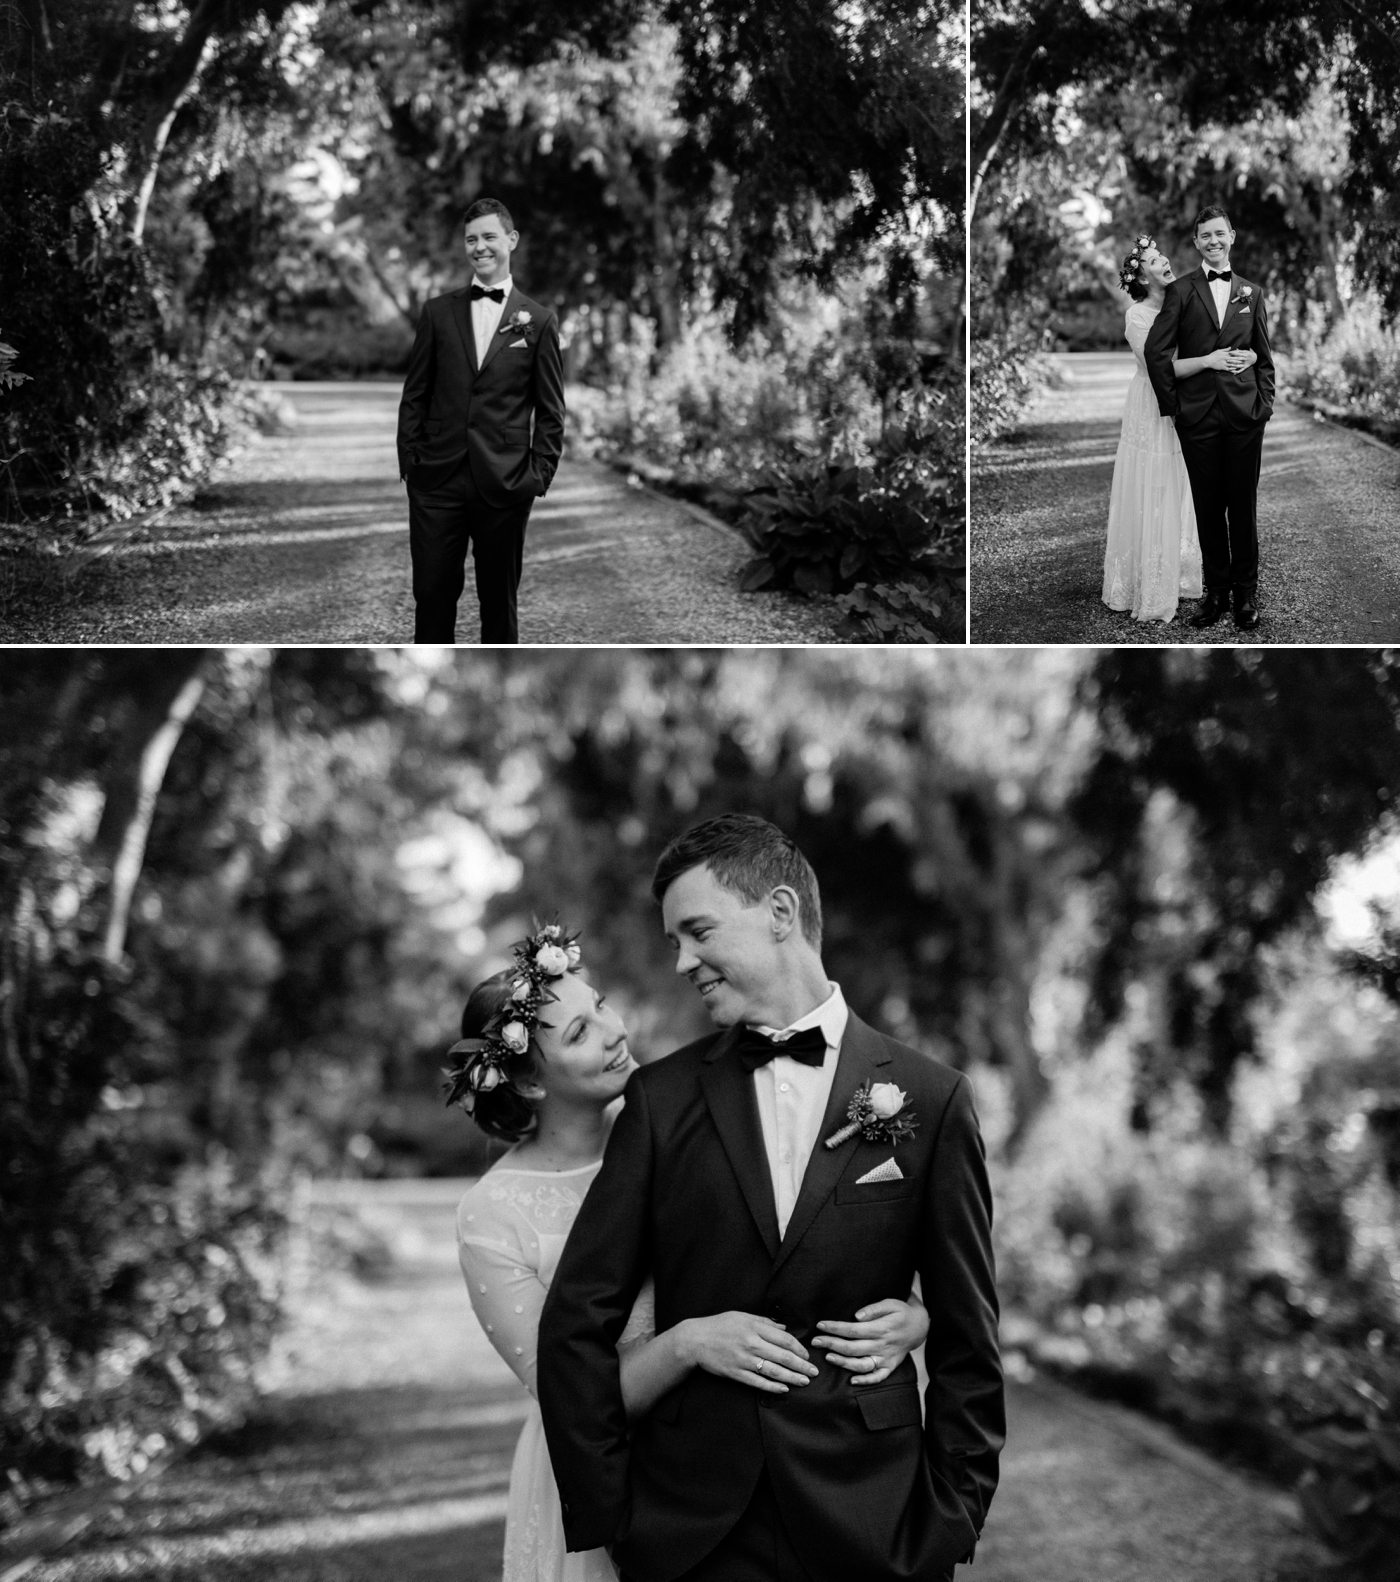 Jo & Aaron - Natural Wedding Photography in Adelaide - Beautiful, modern wedding photographer - Al Ru Farm Wedding Photography - Katherine Schultz_0024.jpg